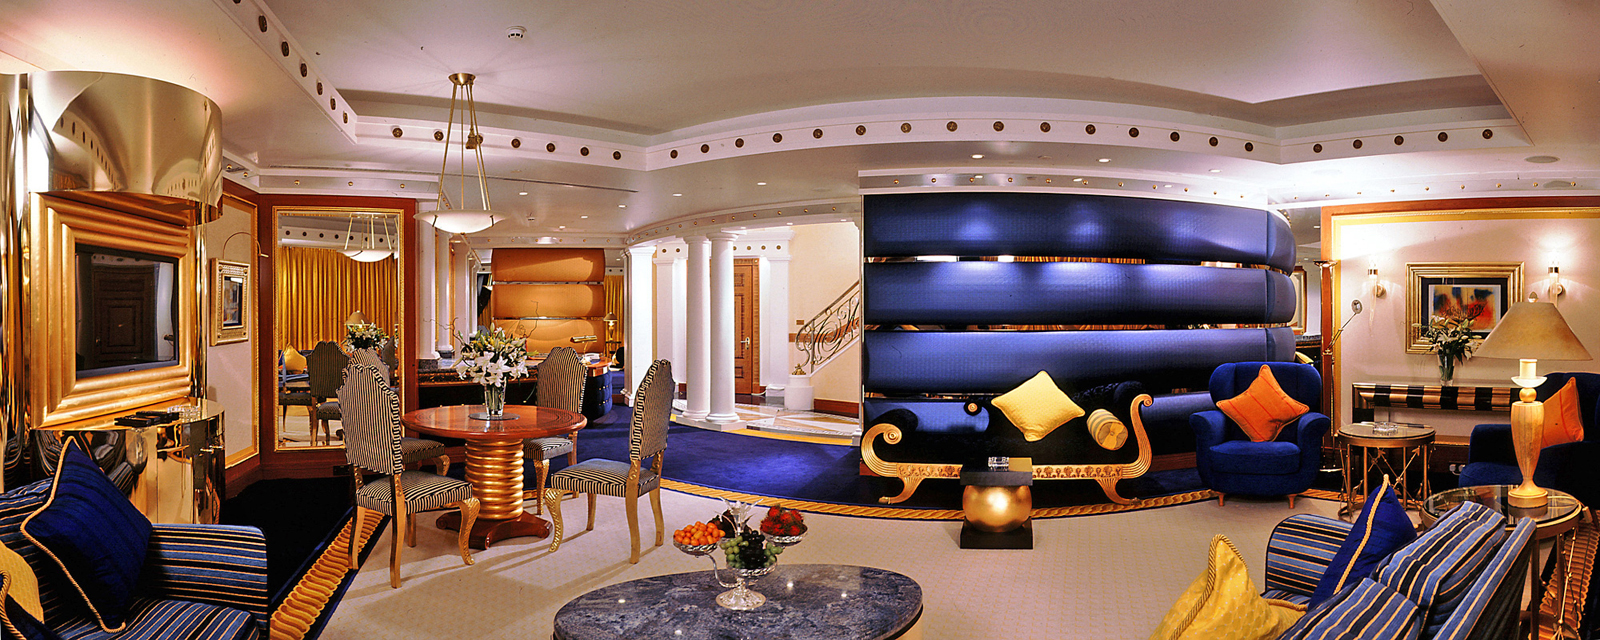 Dubai underwater hotel prices browse info on dubai for Top 10 5 star hotels in dubai